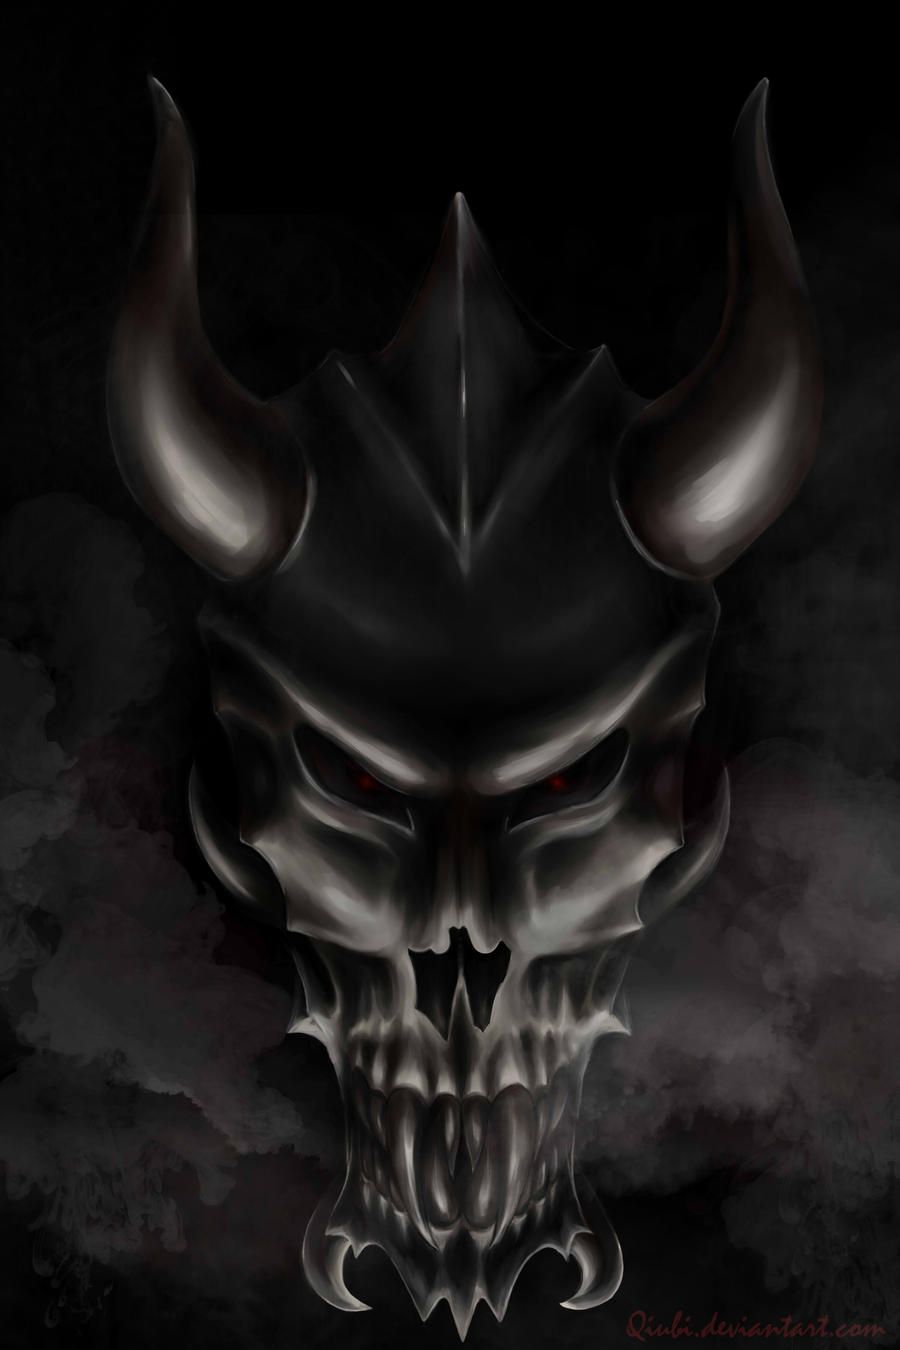 Devil dragon skull xd by qiubi on deviantart - Devil skull wallpaper ...